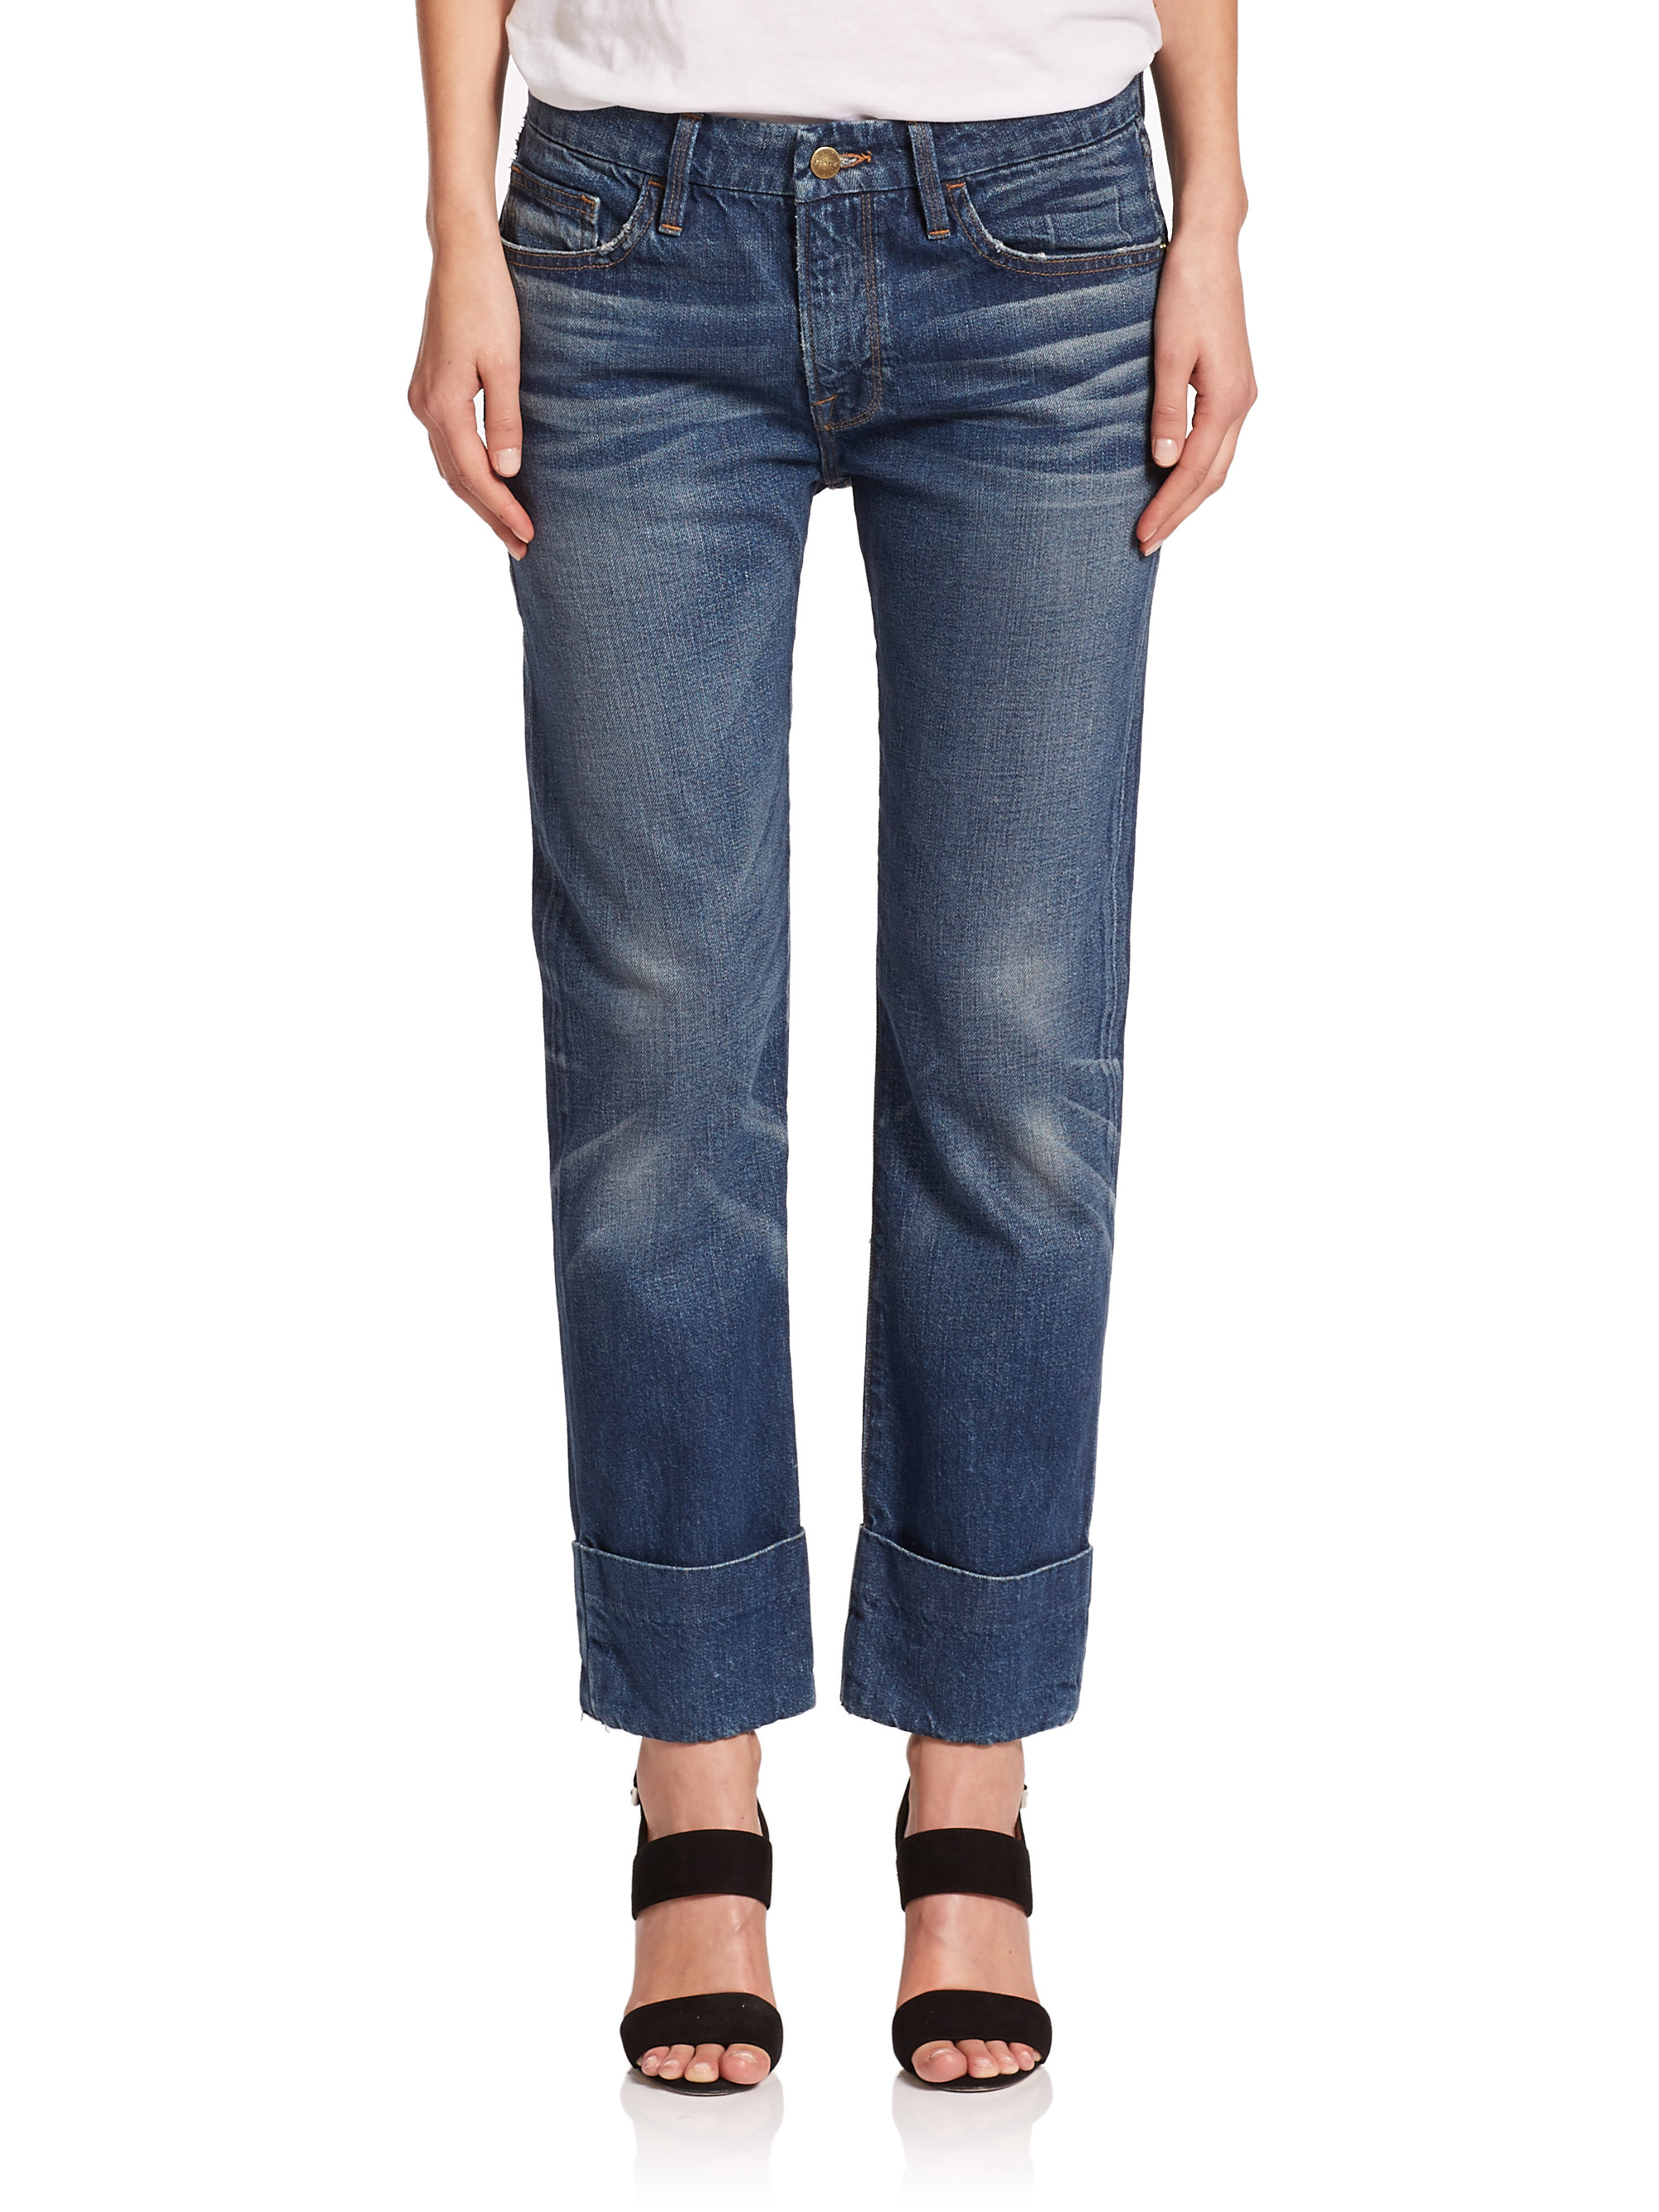 Captivating Frame Denim Le Garcon | Engaging Frame Denim Le Garcon